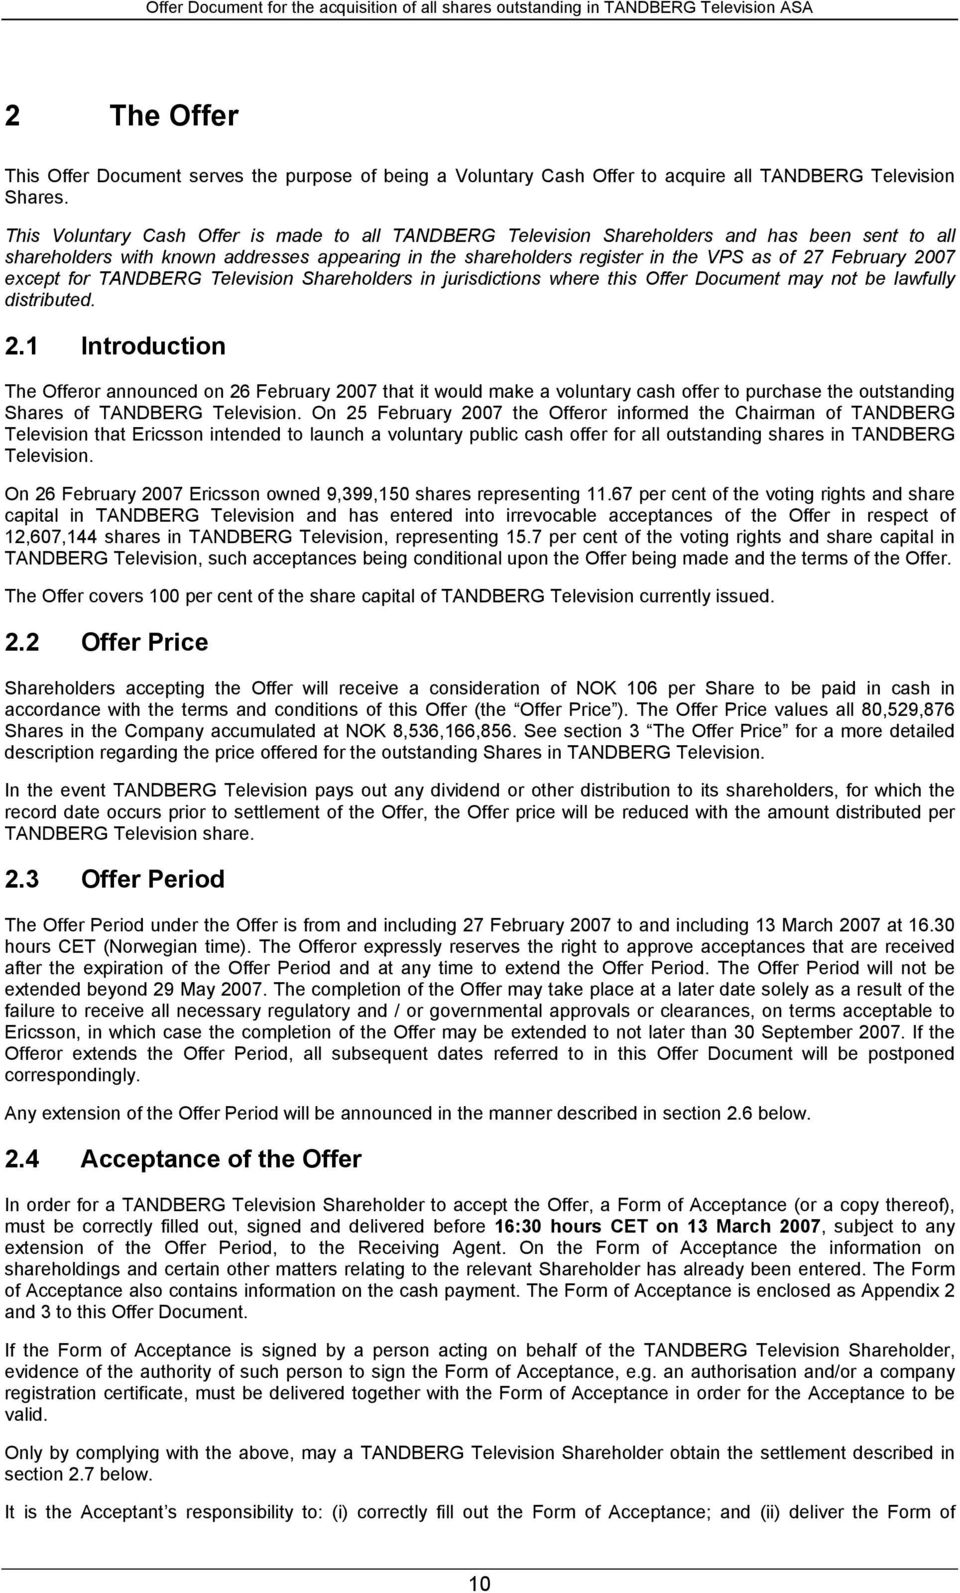 February 2007 except for TANDBERG Television Shareholders in jurisdictions where this Offer Document may not be lawfully distributed. 2.1 Introduction The Offeror announced on 26 February 2007 that it would make a voluntary cash offer to purchase the outstanding Shares of TANDBERG Television.